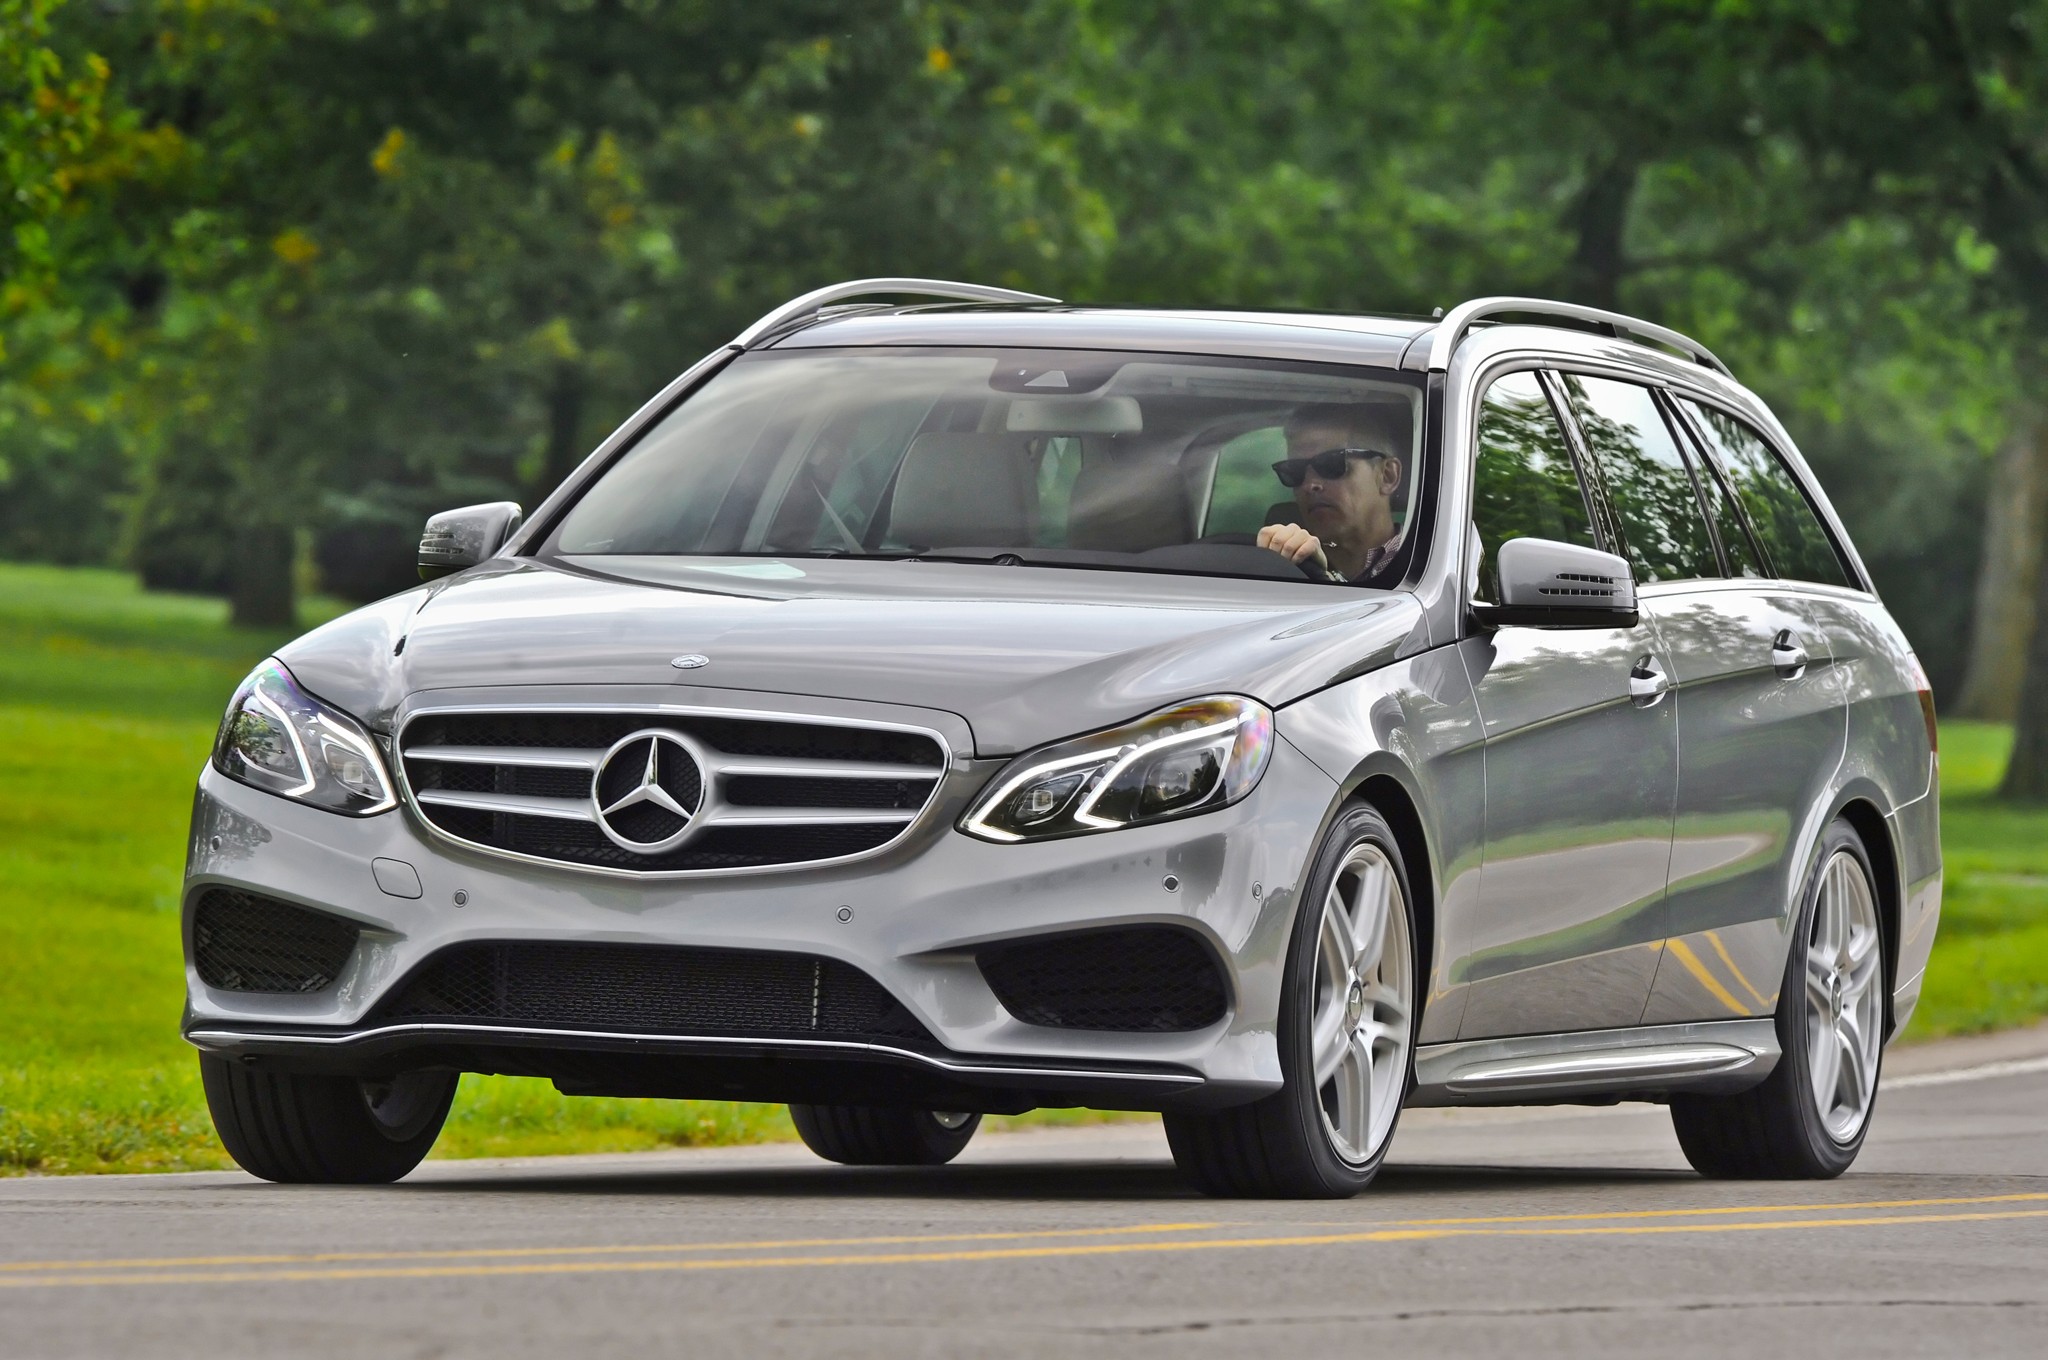 medium resolution of 2014 mercedes benz e350 4matic wagon first drive